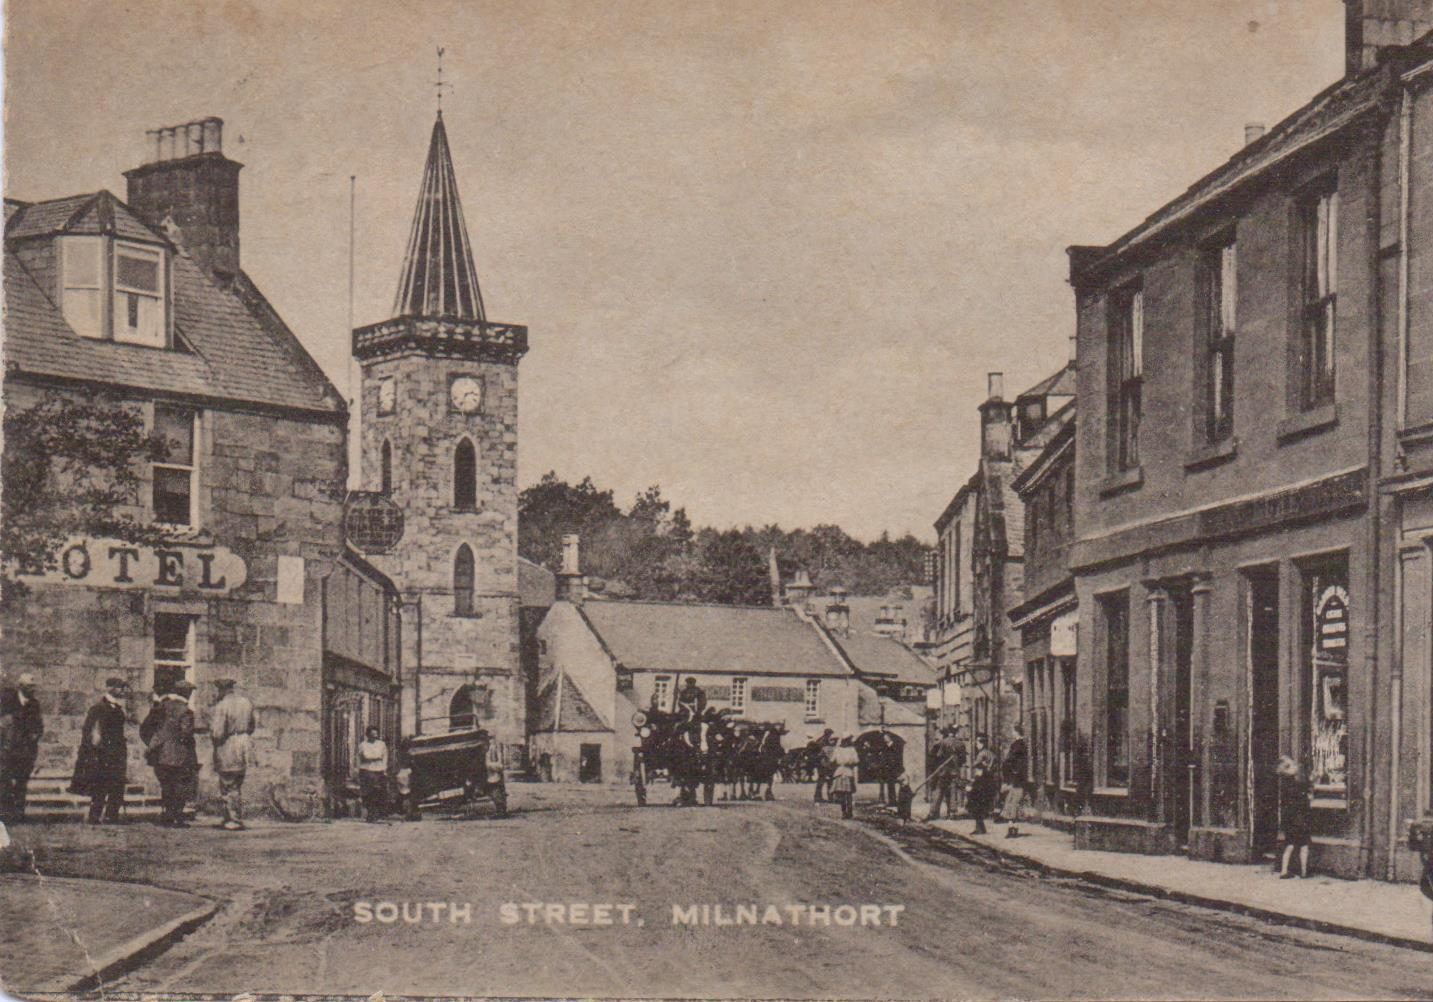 South Street, Milnathort in 1923. The Royal Hotel on the left of the picture and the Commercial Hotel in the centre are no longer hotels .